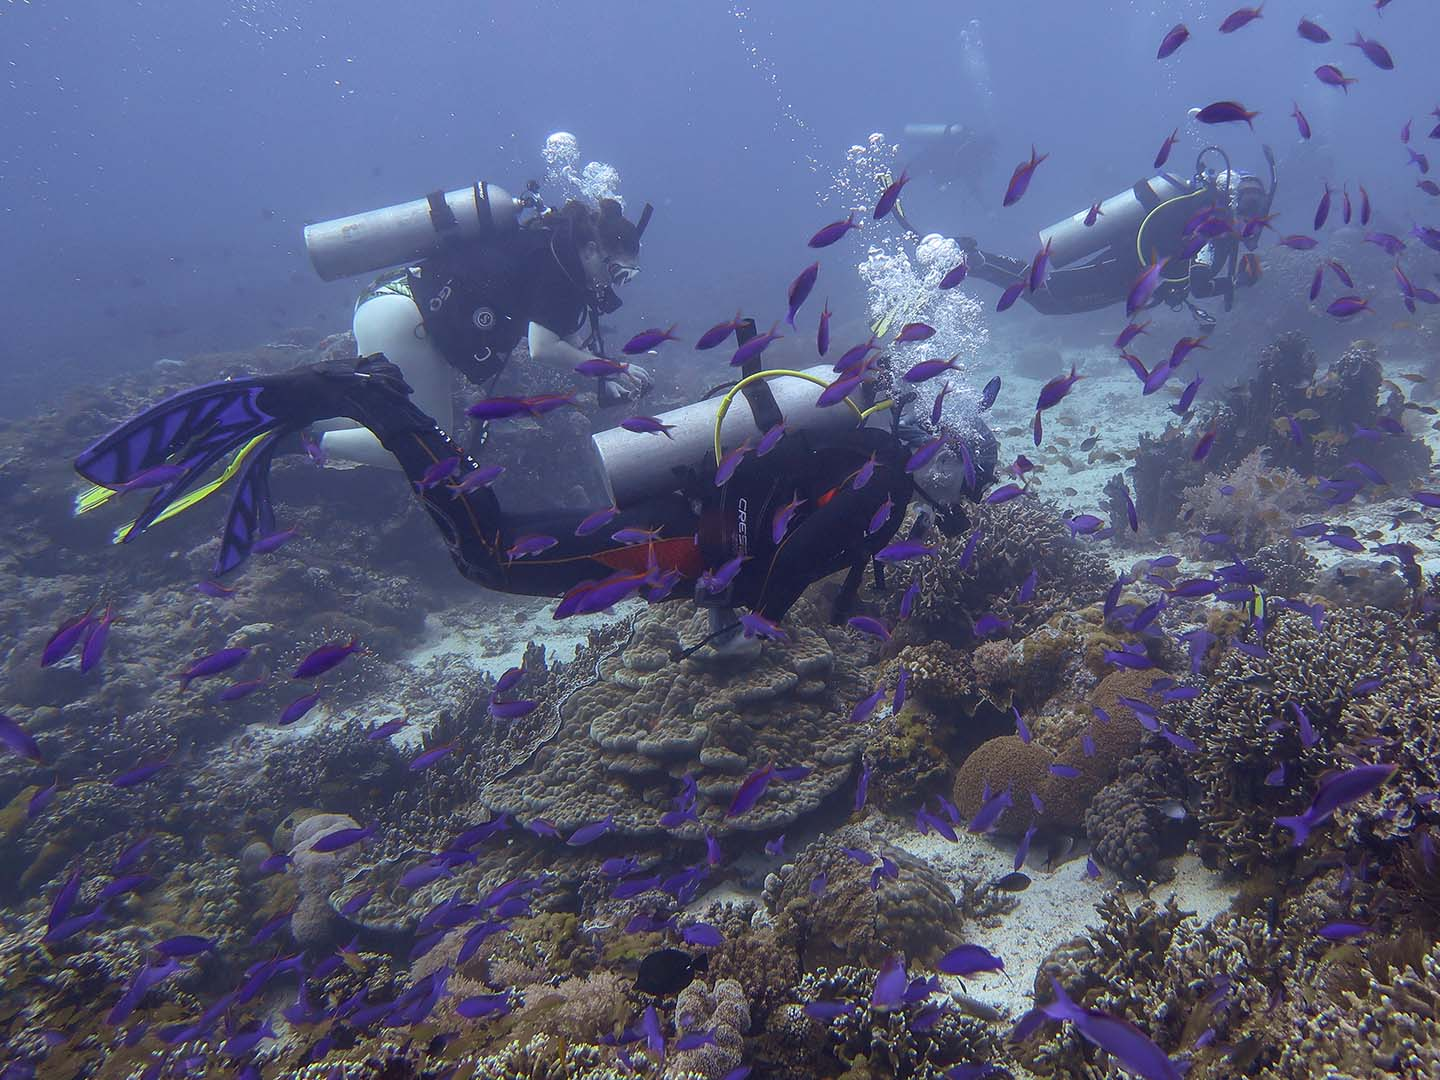 Purple anthias makes the reef brighter and livelier in Chapel dive site in Apo Island.